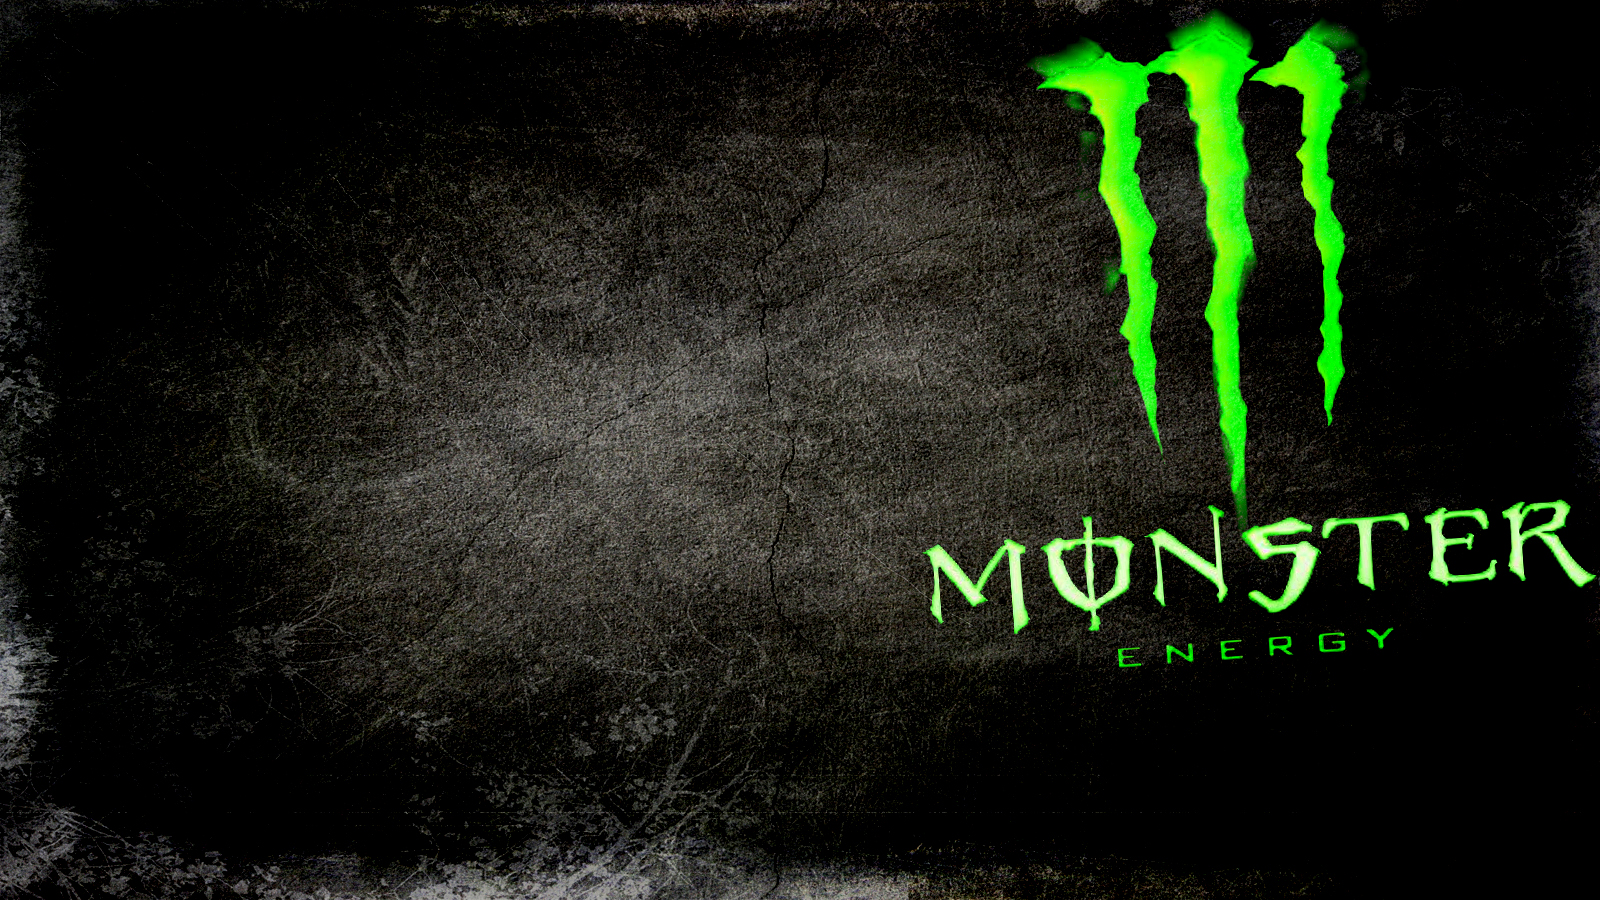 http://4.bp.blogspot.com/-5cyhxitQ-5A/TxhhaesVAfI/AAAAAAAAAAk/zhjG64SS6so/s1600/Monster_Energy_Wallpaper_by_UndeadJx.jpg